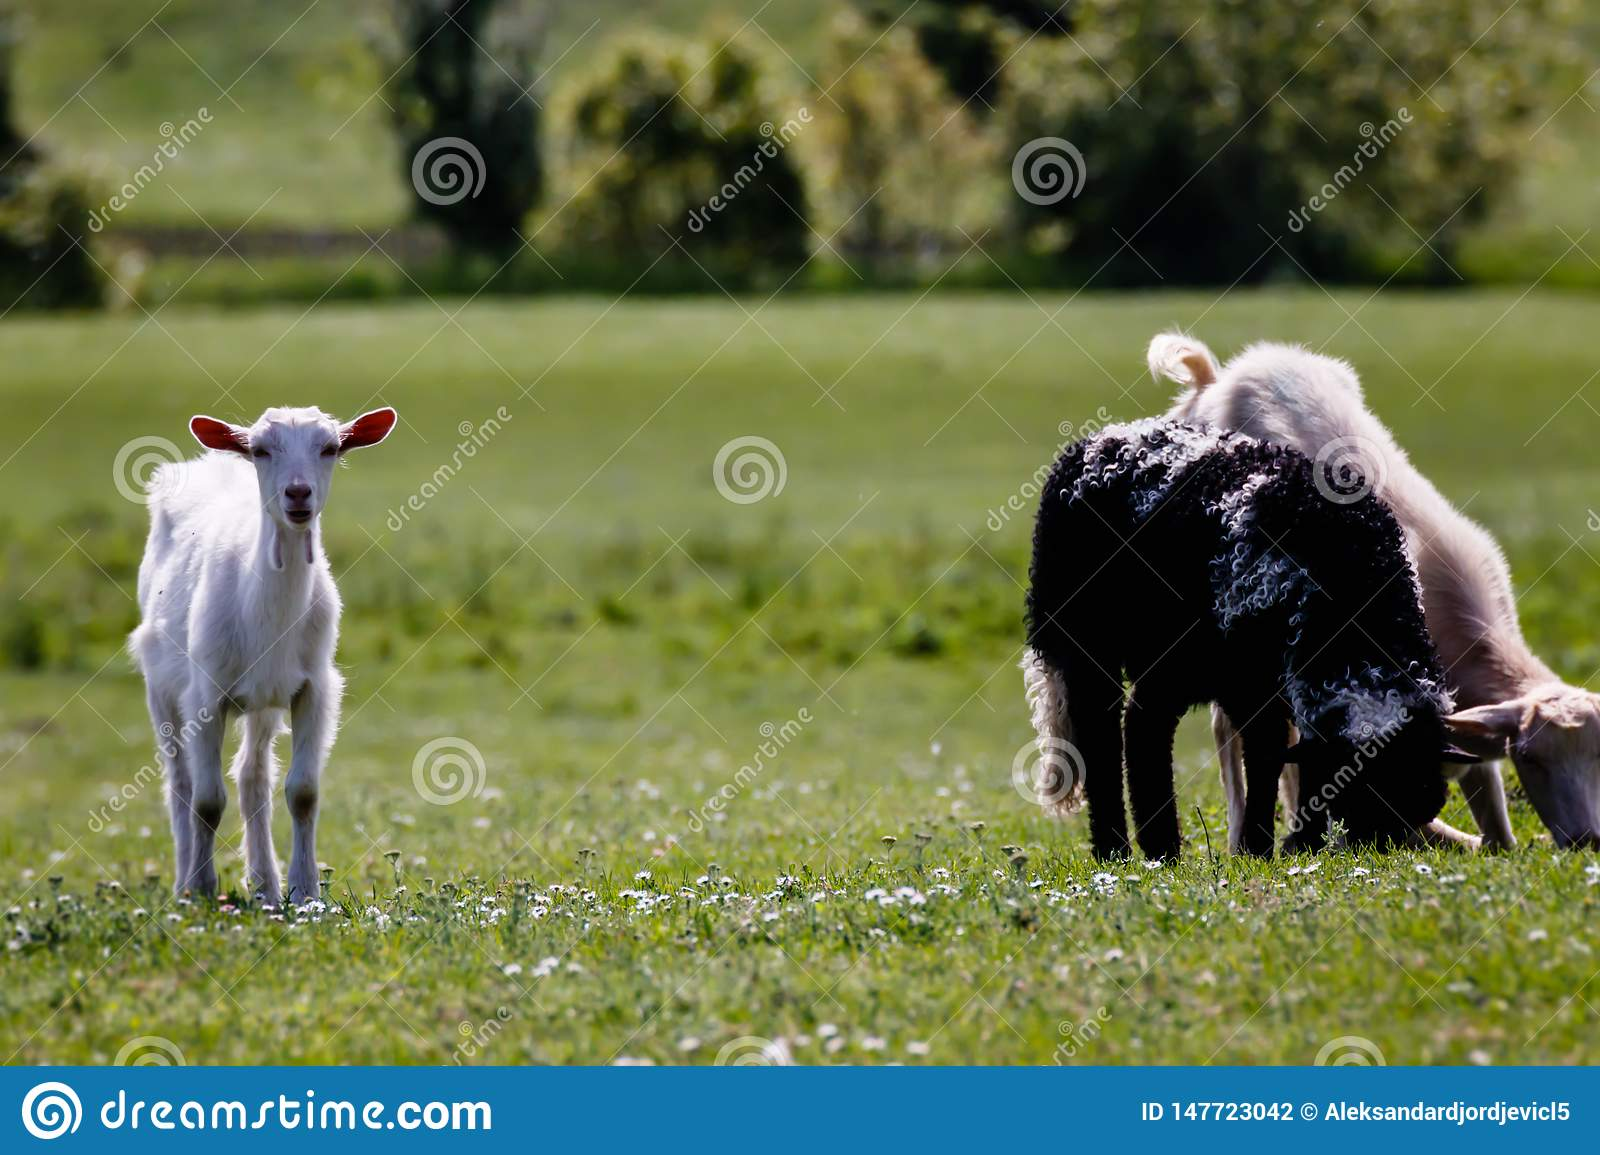 Young kid goat at the meadow with friends, cute goatling